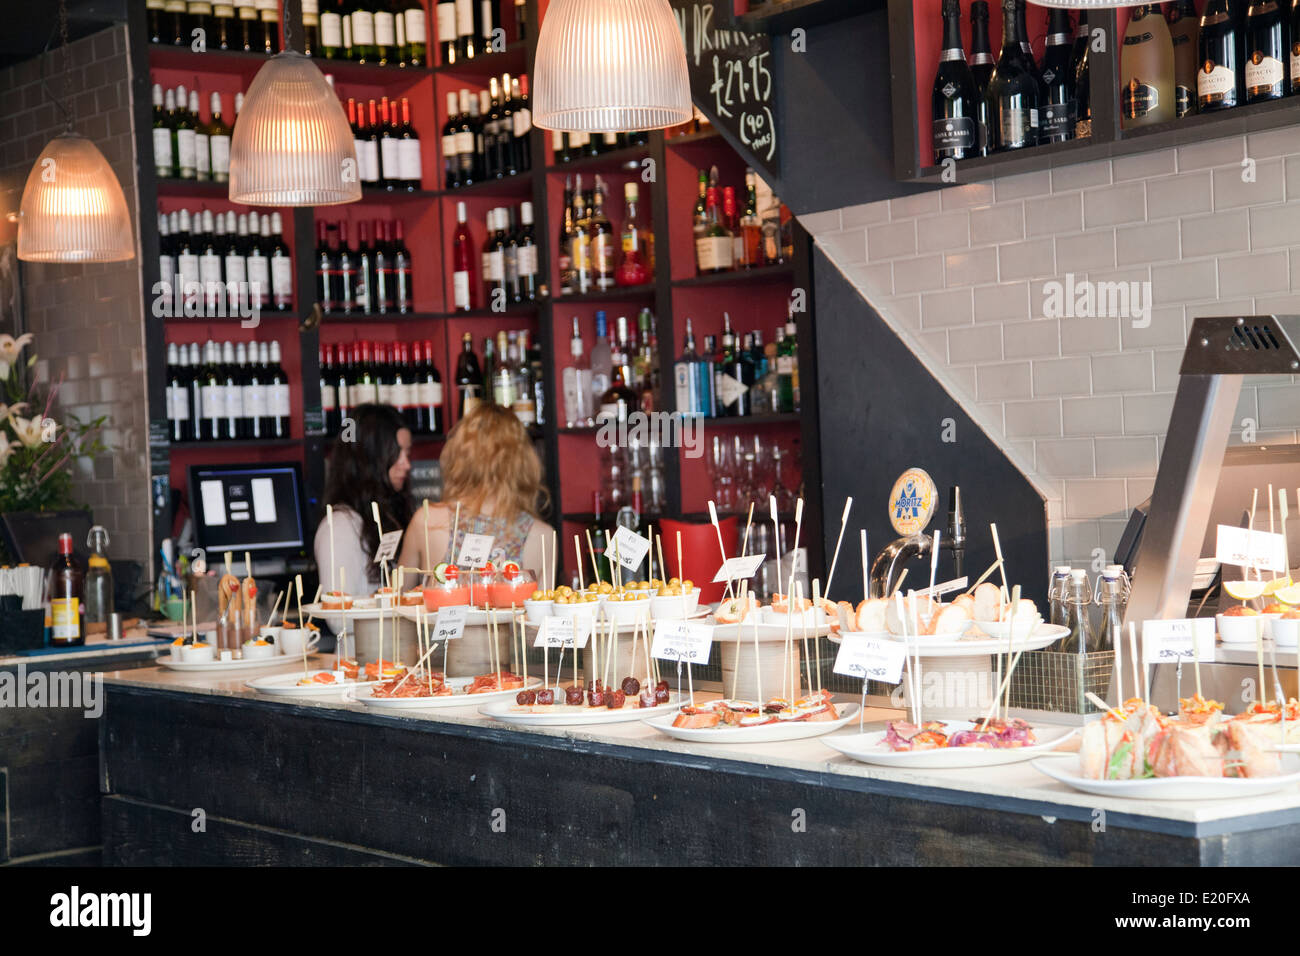 Pix Cafe Restaurant on Portobello Rd in London W11 - UK - Stock Image